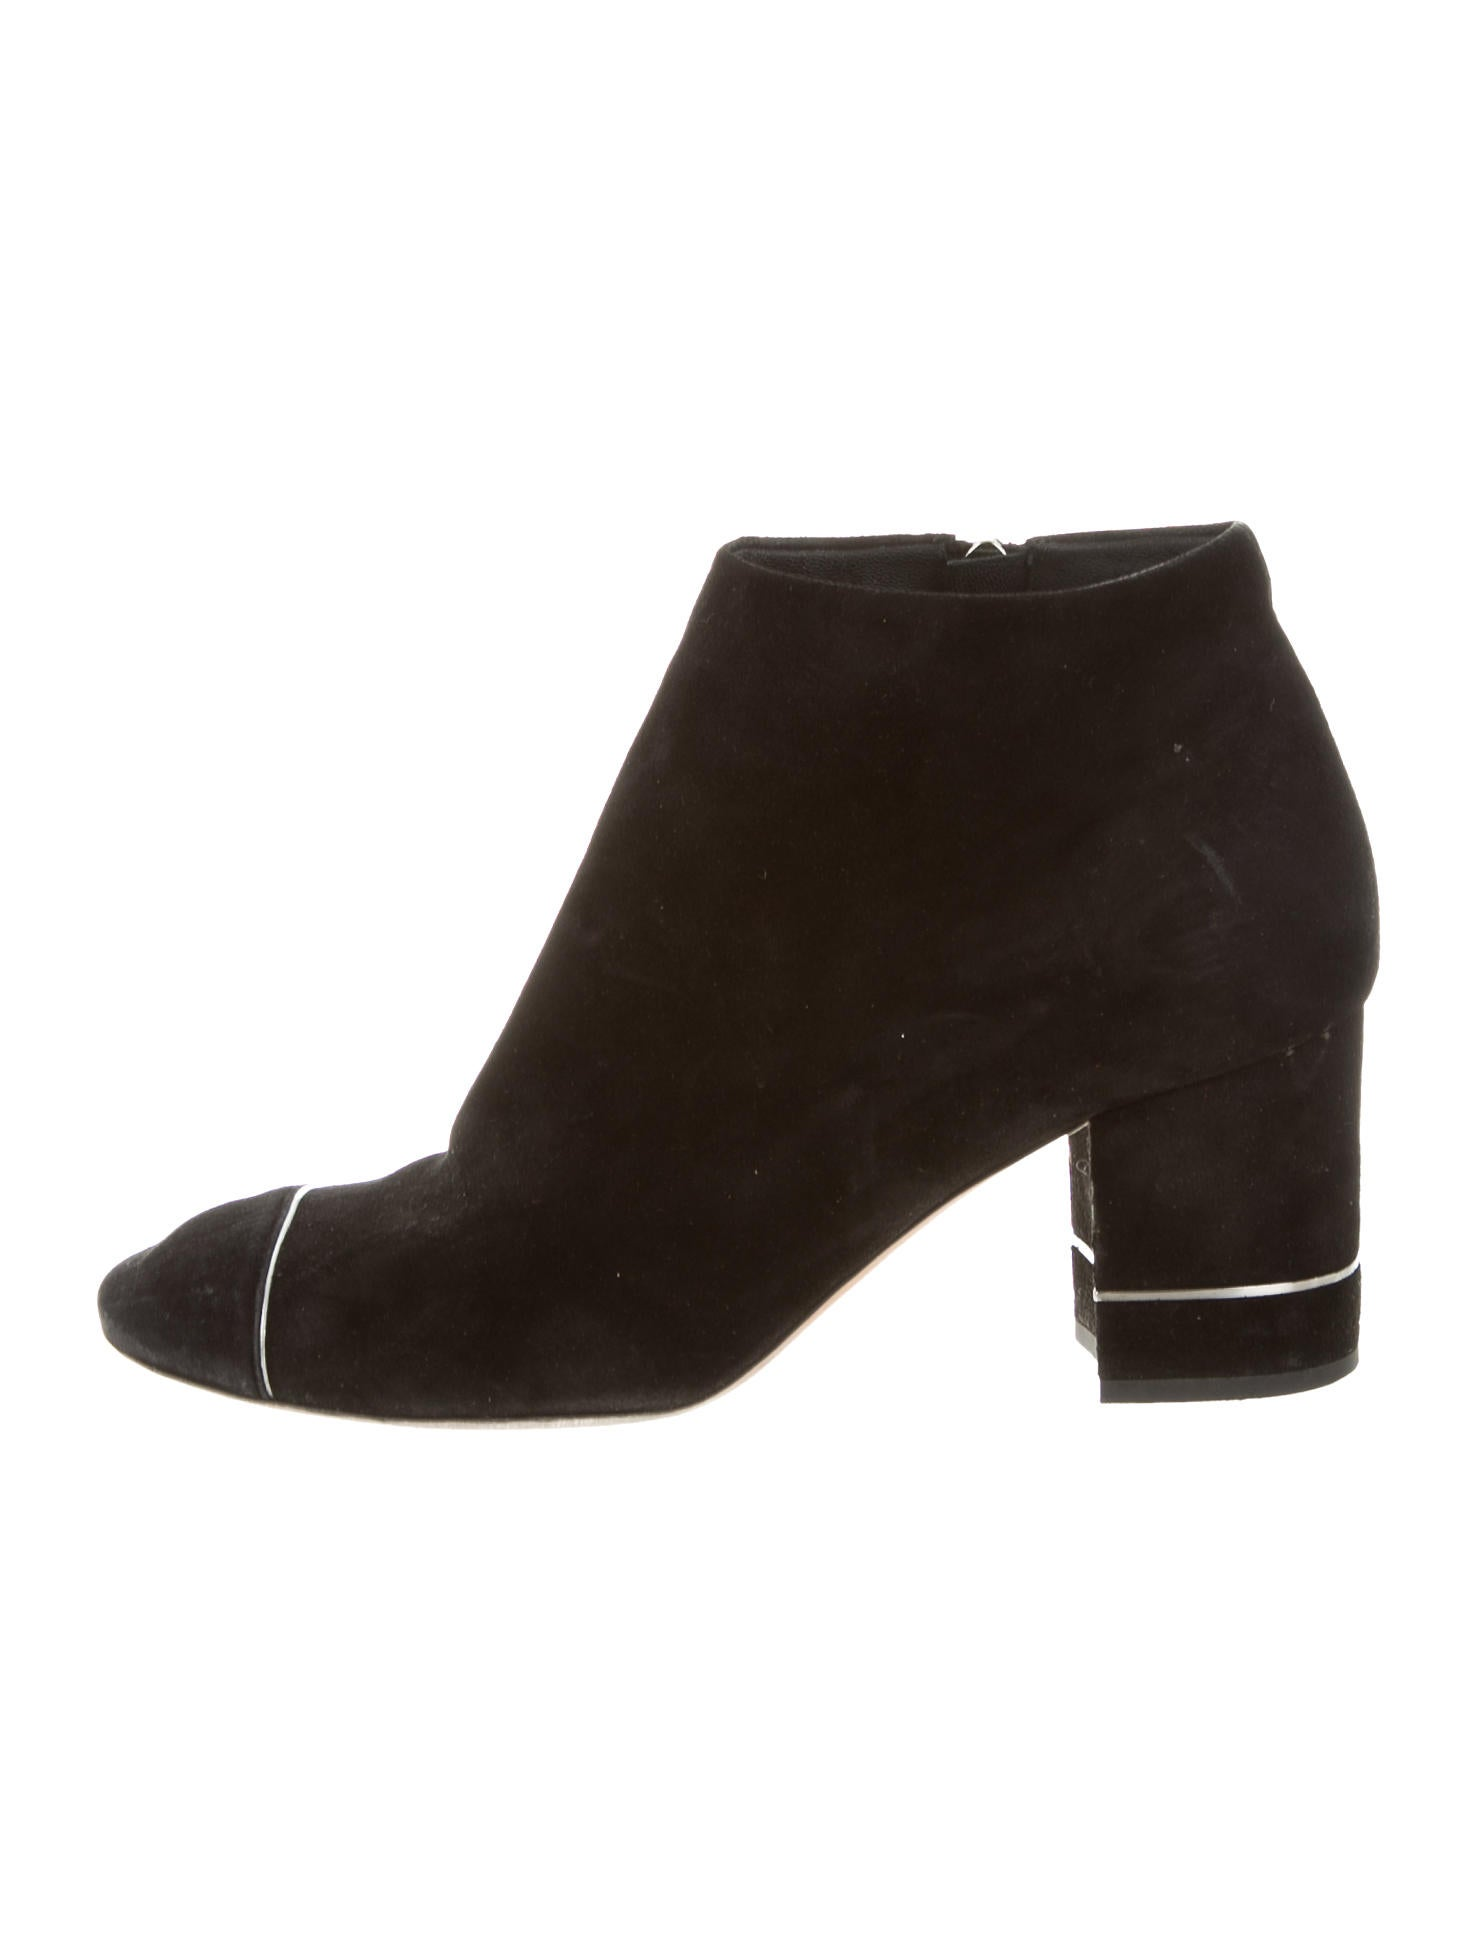 chanel cc suede ankle boots shoes cha169763 the realreal